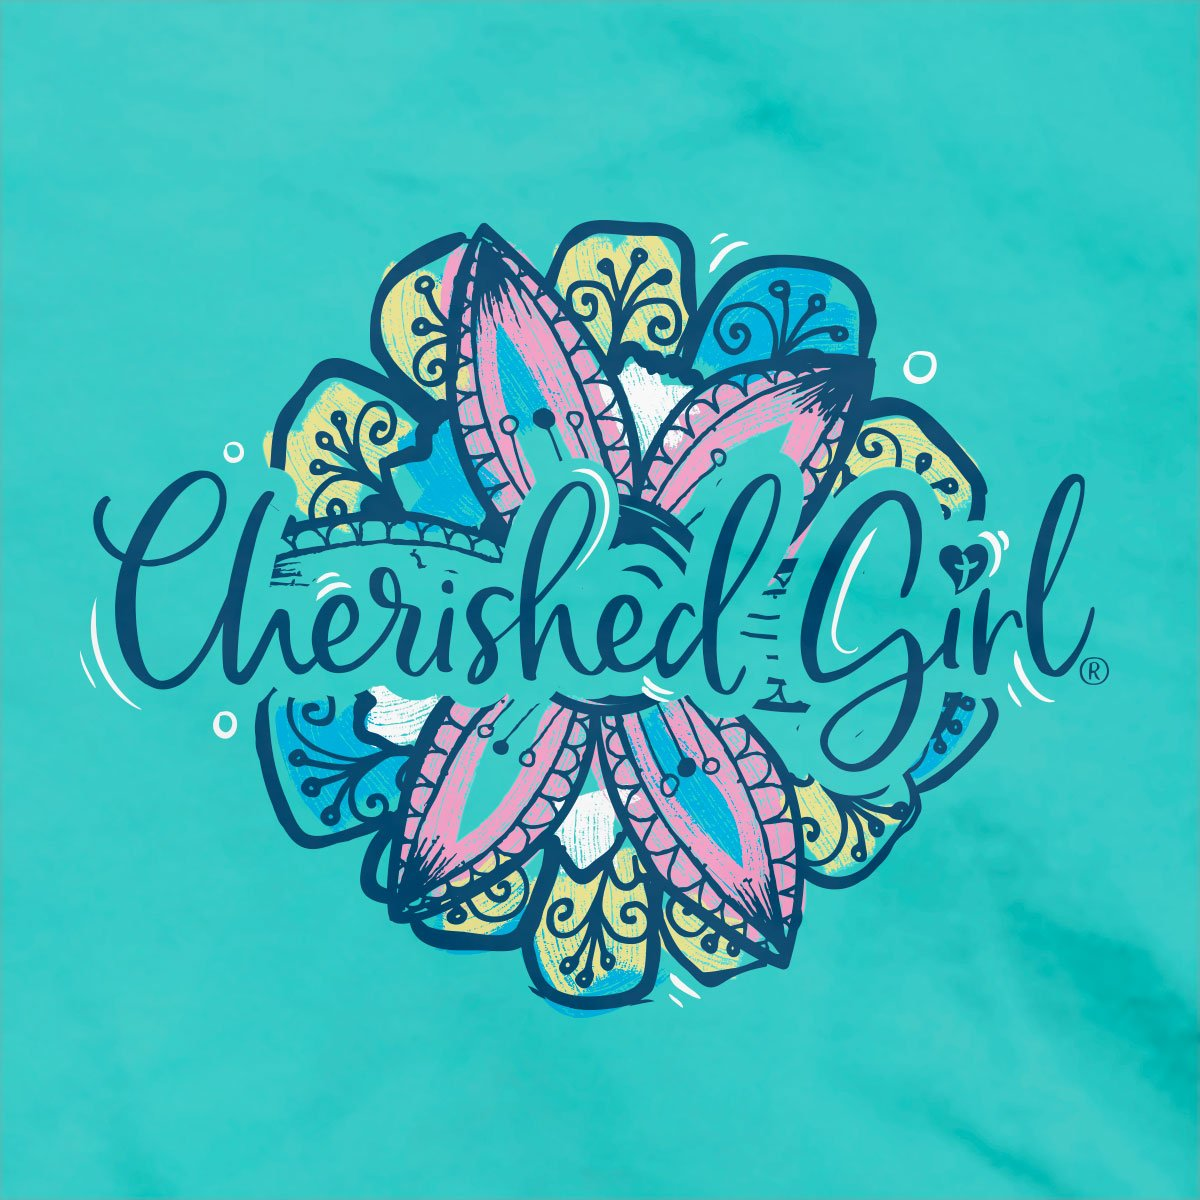 Cherished Girl Christian T-Shirt Love God